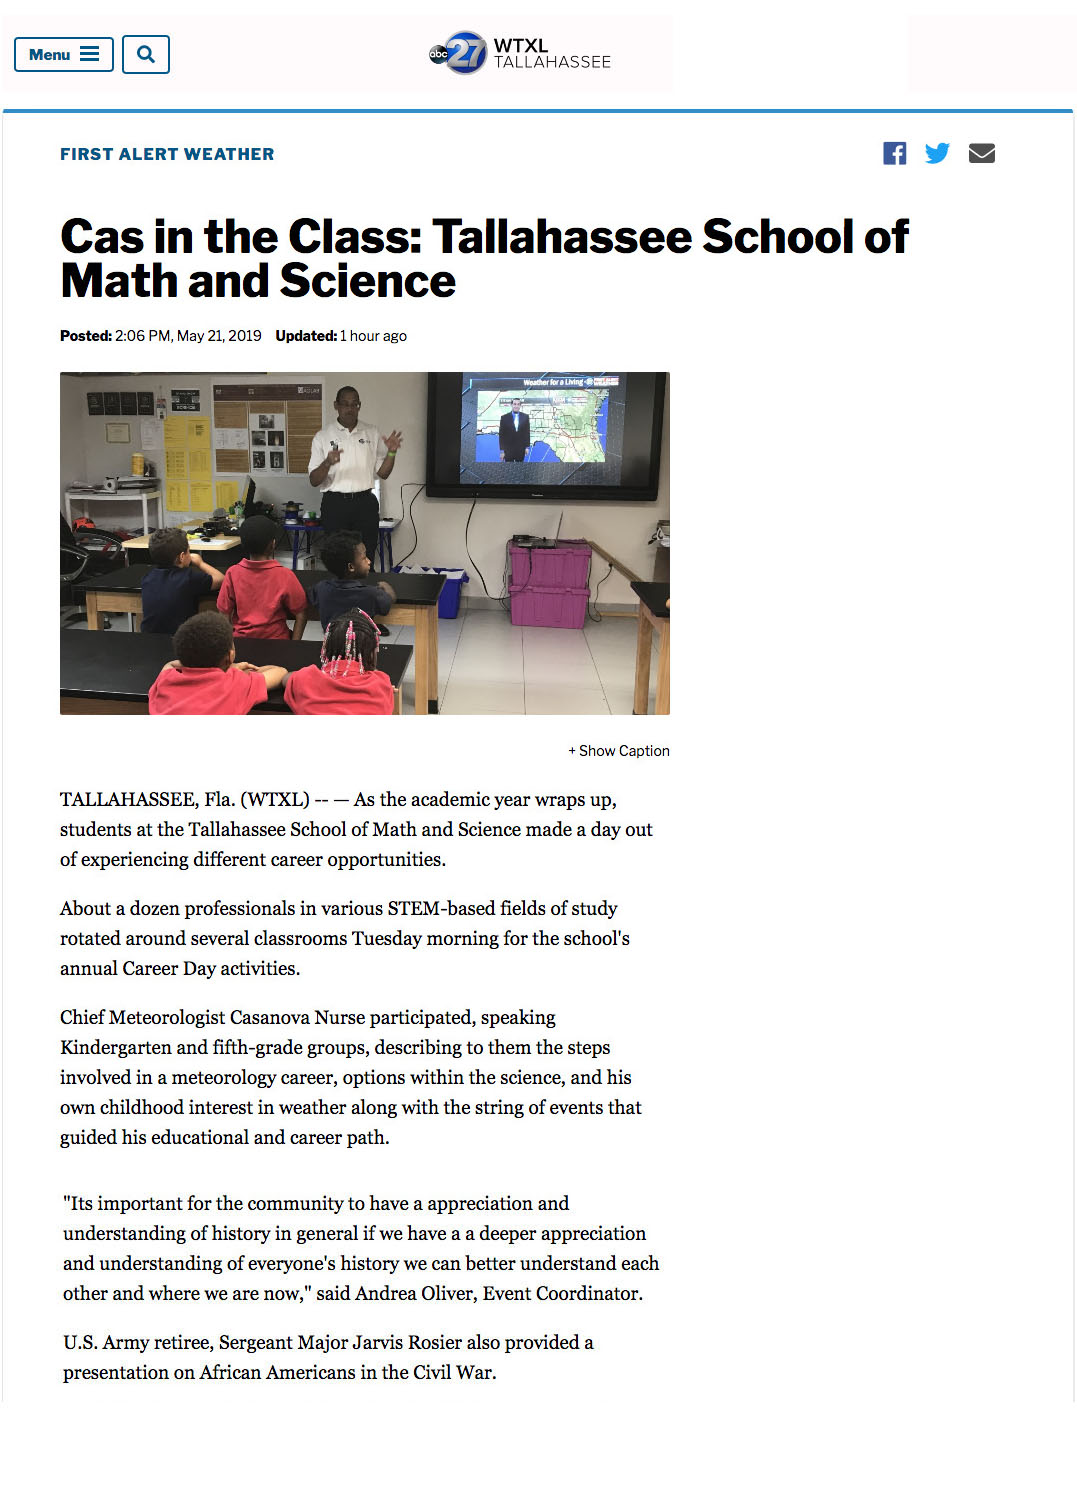 Cas in the Class: Tallahassee School of Math and Science